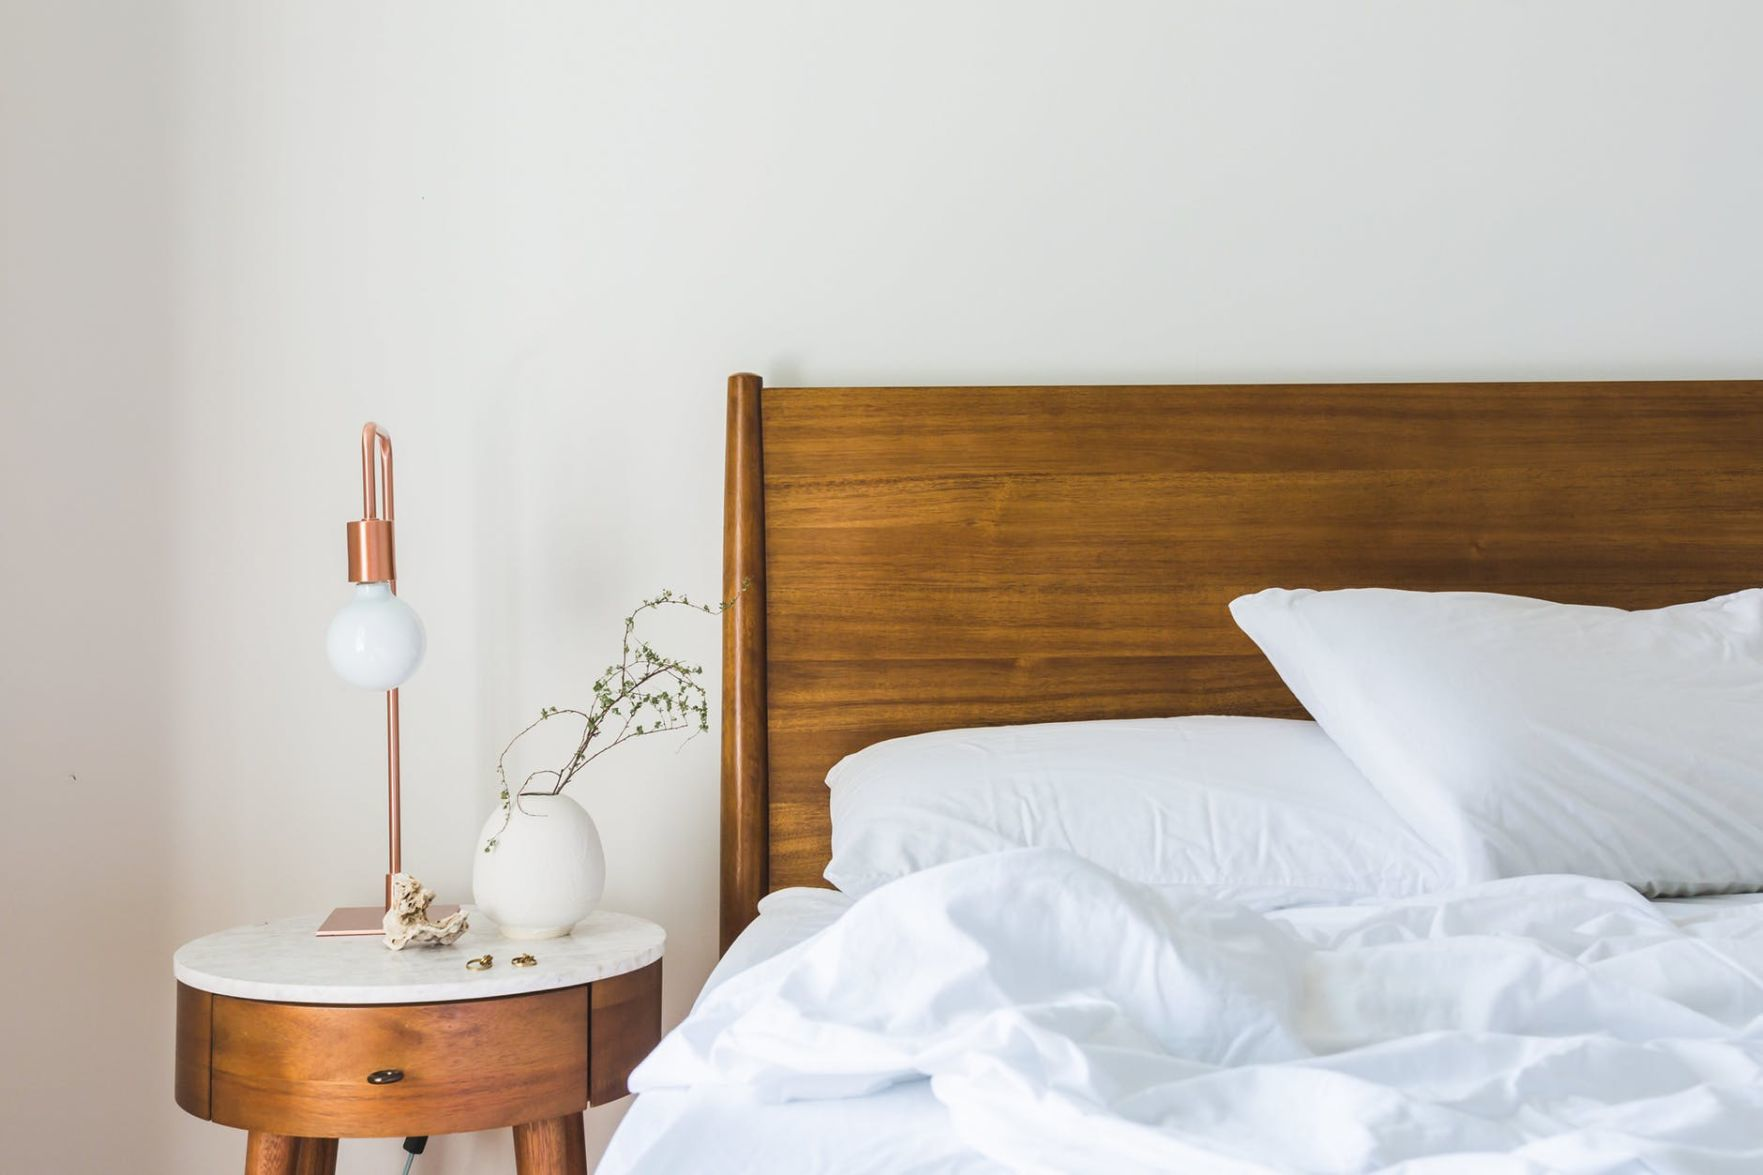 No sweat sheets to get your bedroom ready